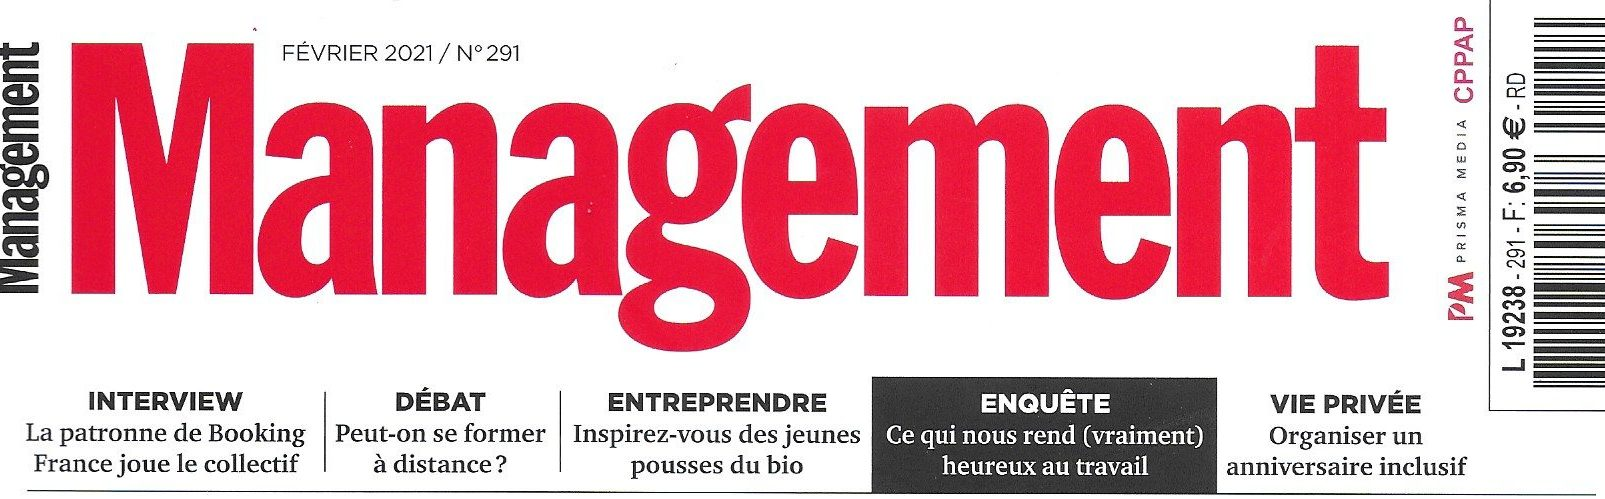 L'Institut cité dans Management: méditer face à l'incertitude ?